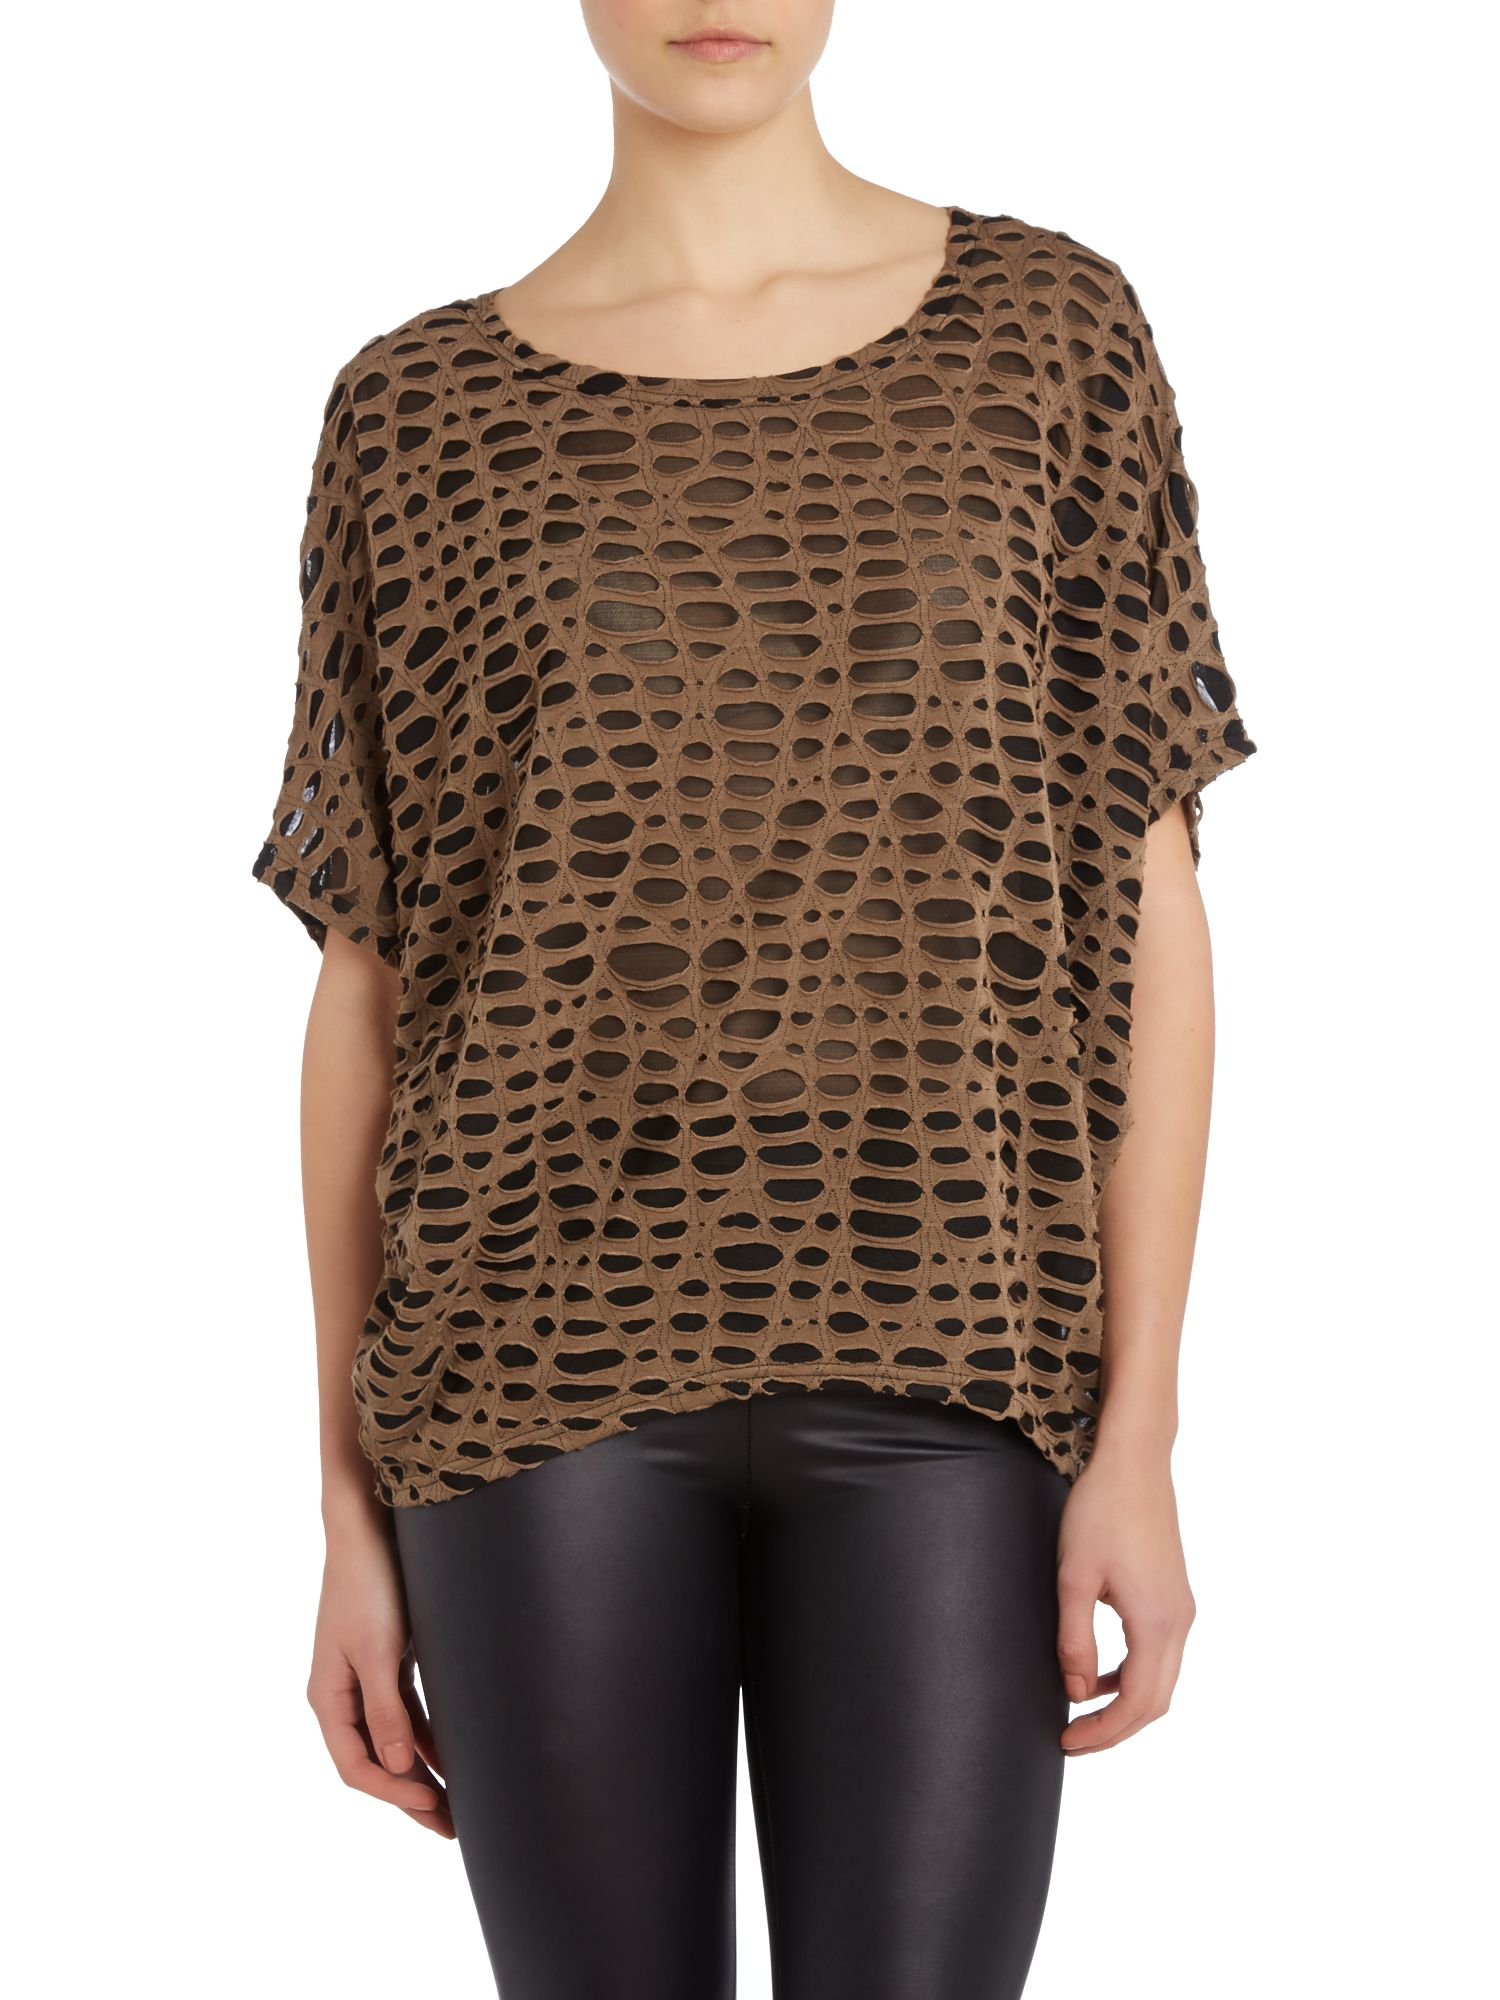 Net over layer batwing top